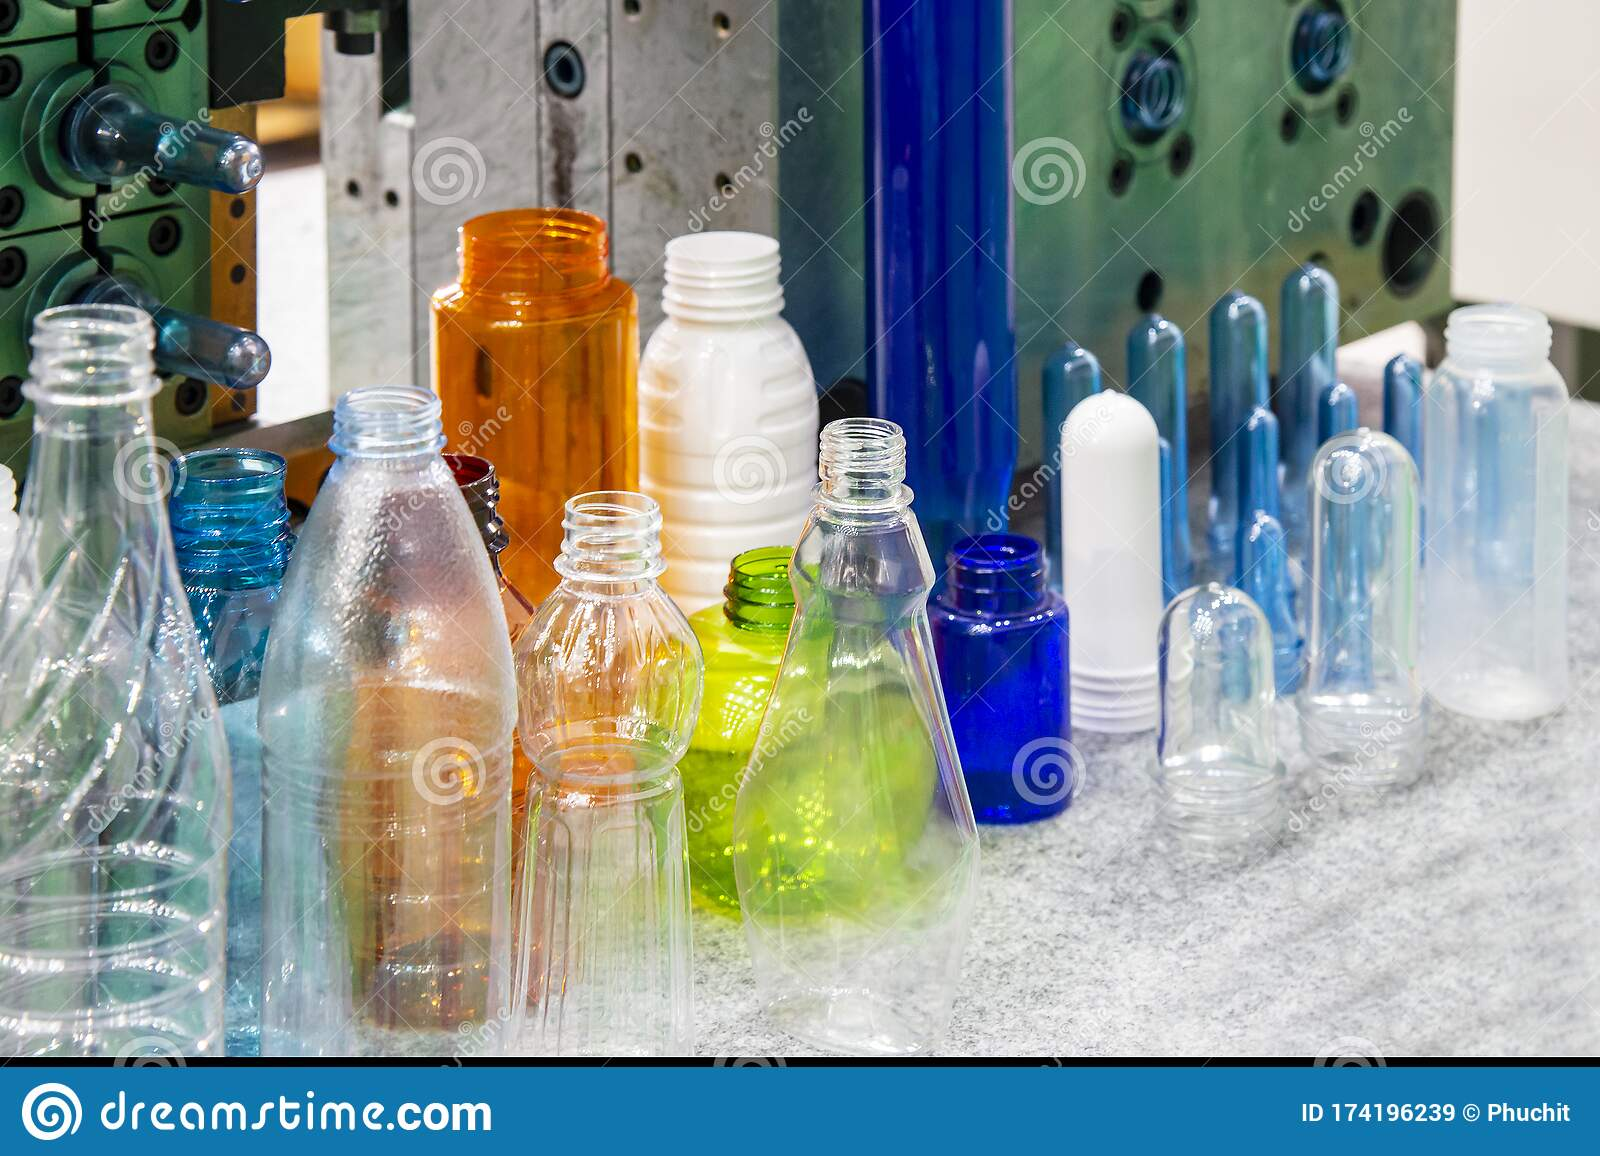 The Various Type Of Plastic Bottles And The Preform Shape With The Injection Mold Background In The Drinking Water Factory Stock Image Image Of Chemical Background 174196239